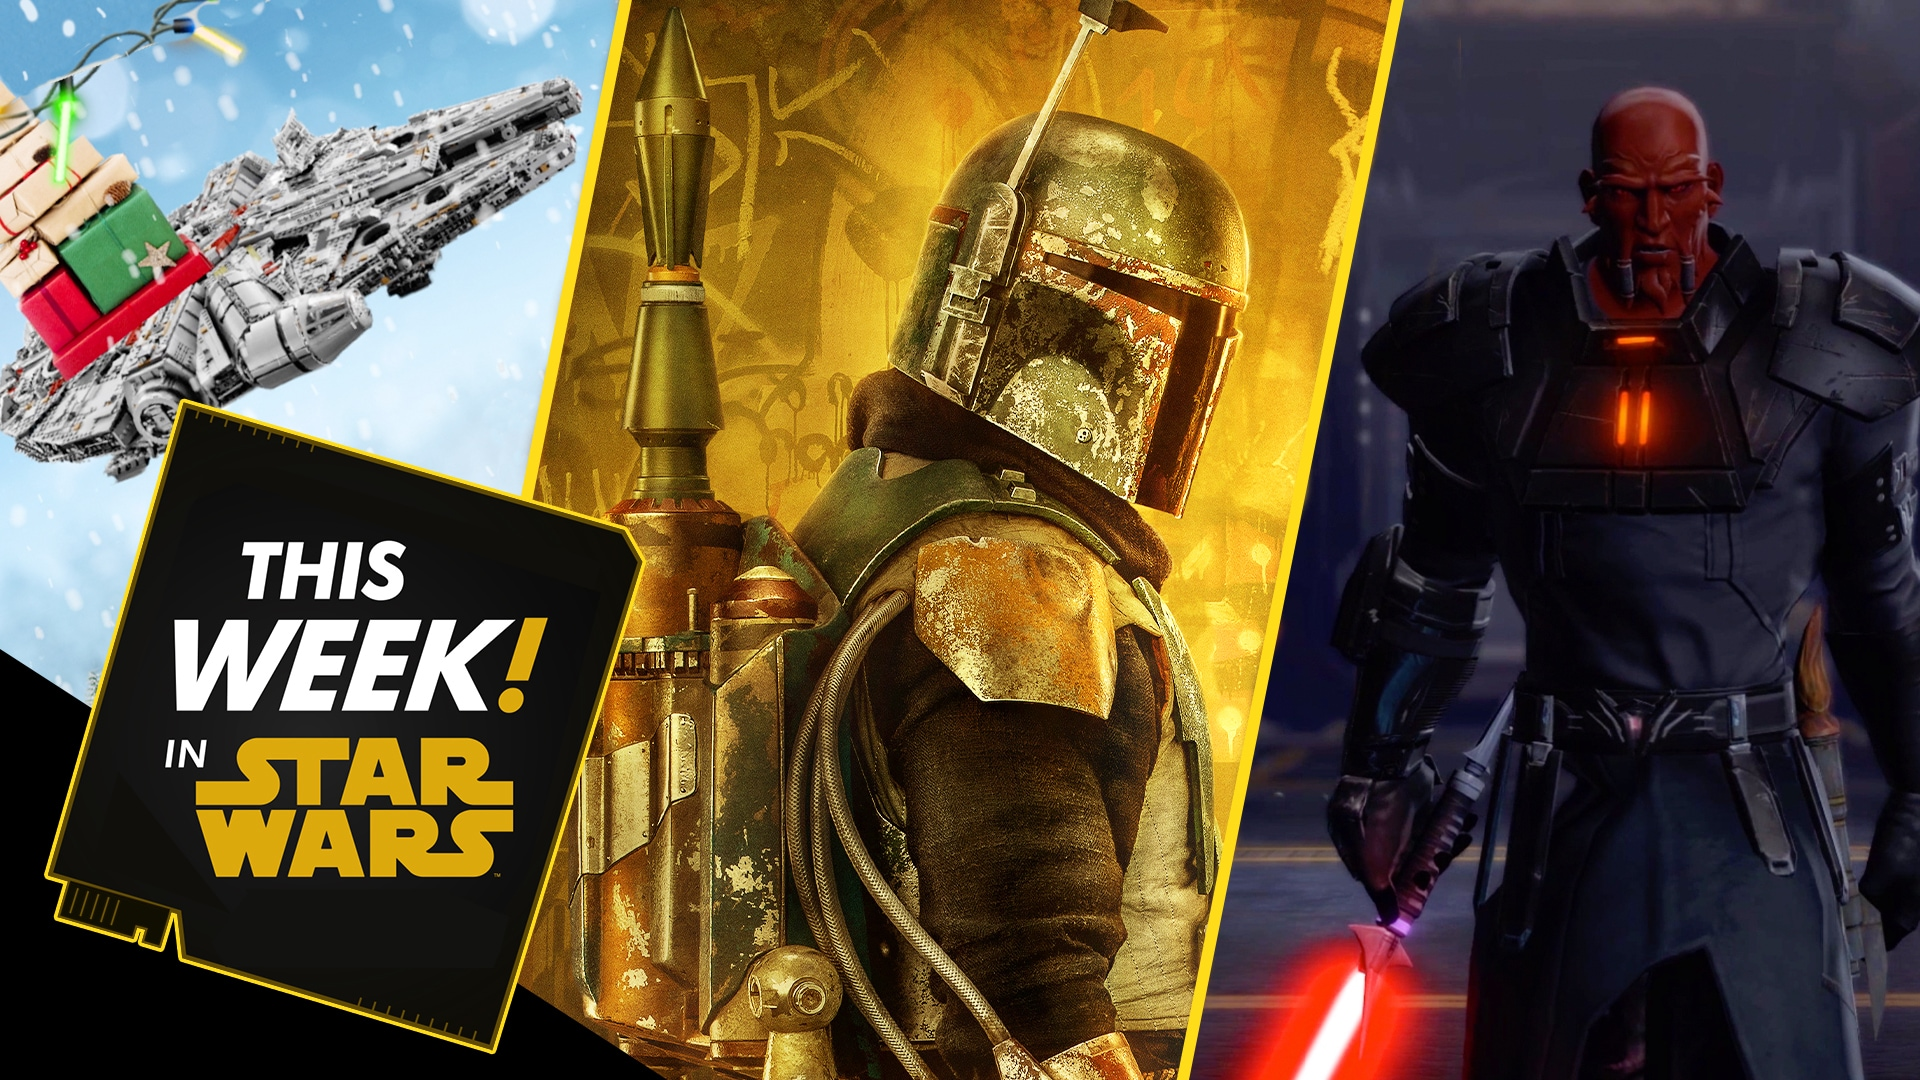 Boba Fett is Back, Vengeance Echoes Through Star Wars: The Old Republic, and More!